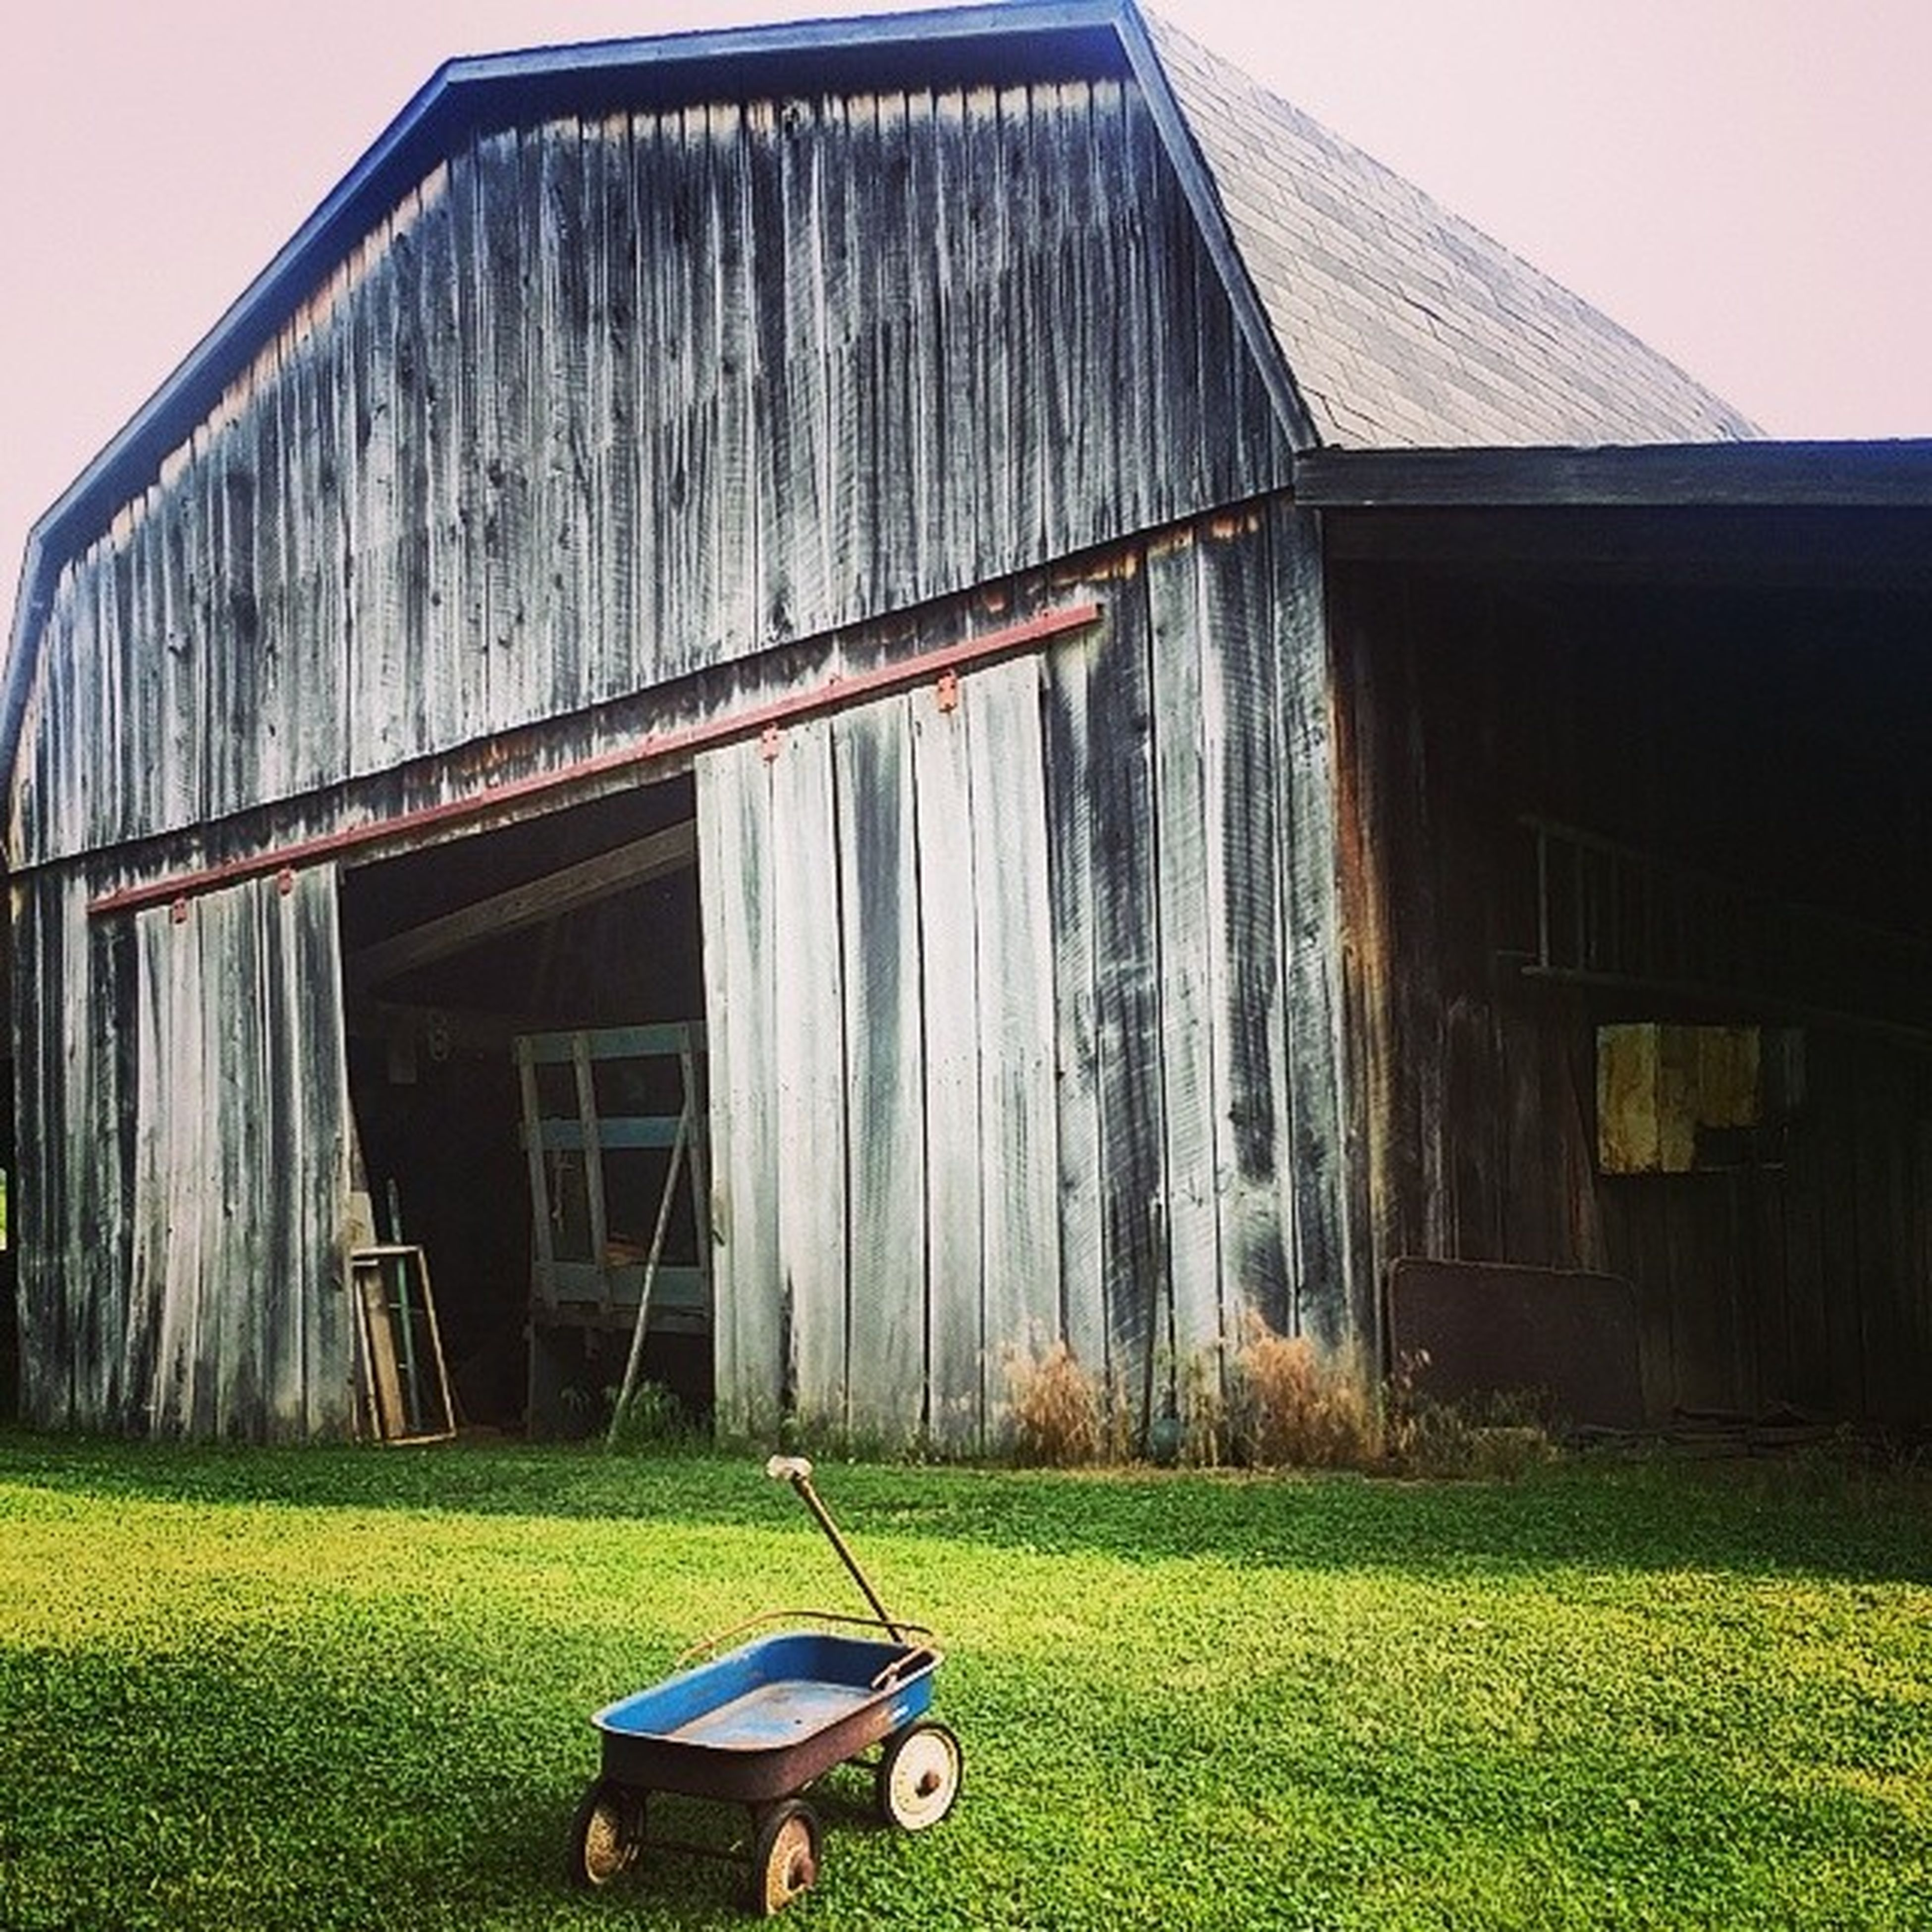 grass, building exterior, architecture, built structure, field, house, grassy, green color, mode of transport, sky, day, outdoors, transportation, abandoned, lawn, building, residential structure, barn, no people, window